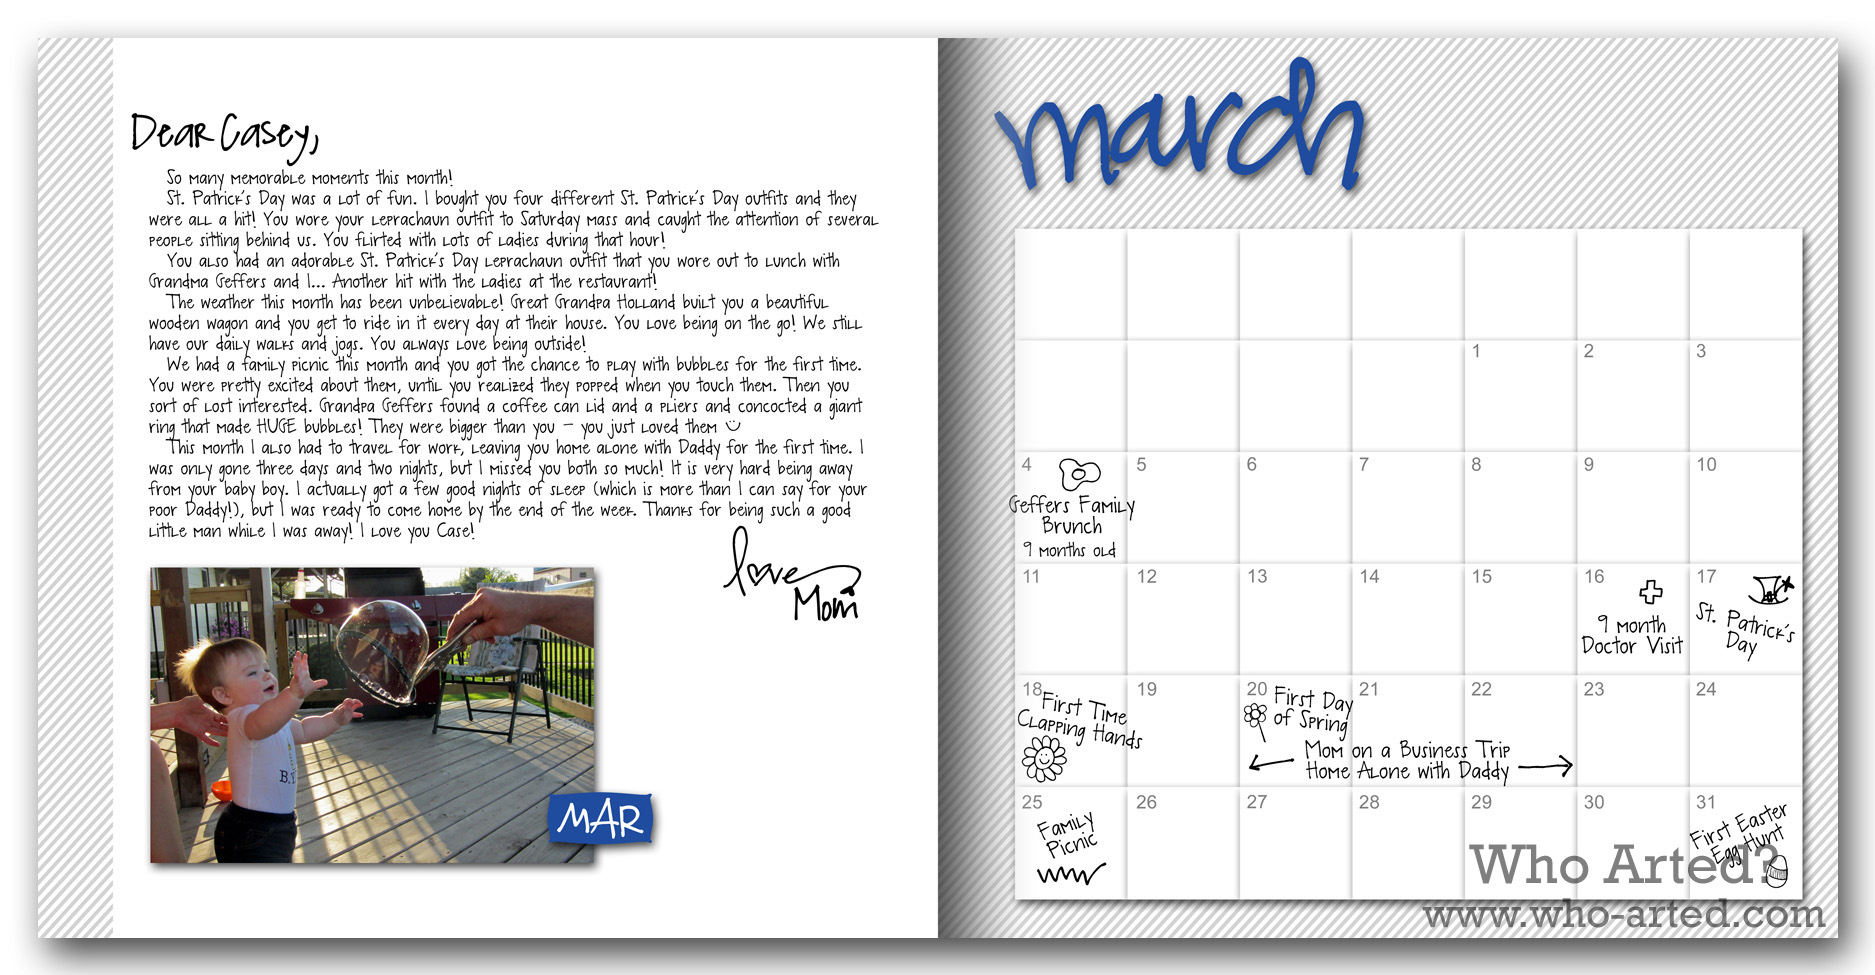 Calendar Photo Ideas For Each Month : Baby book ideas who arted